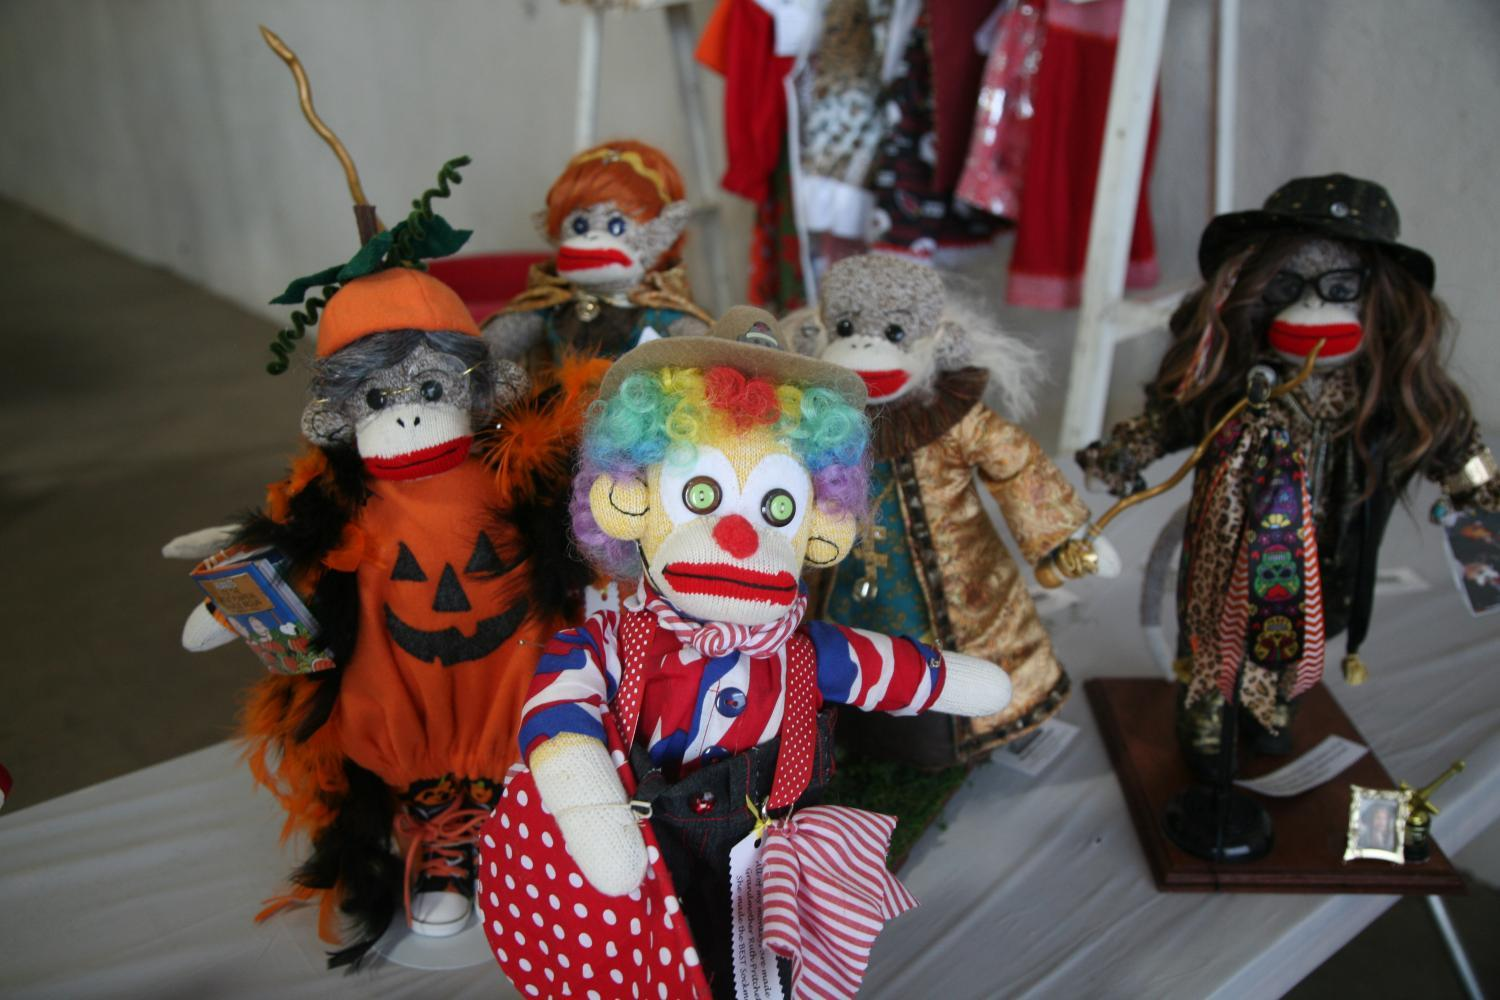 several sock monkeys, one dressed like a pumpkin, a rodeo clown and fantasy characters